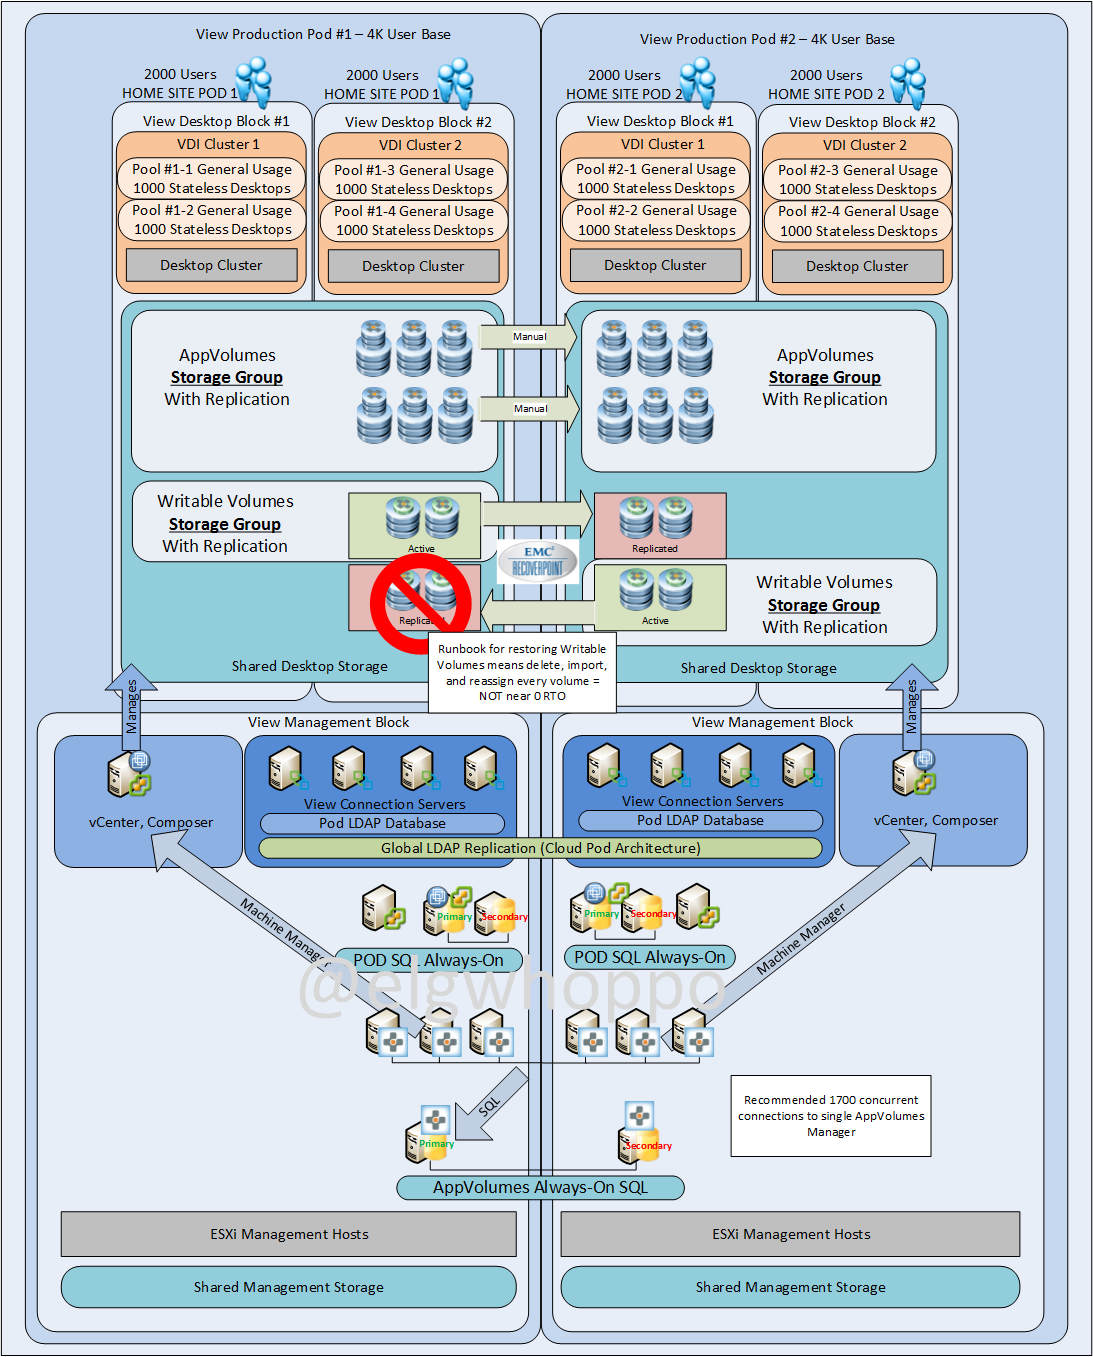 Appvolumes 29 near 0 rto multi datacenter design options the problem with option 3 is the rto isnt met and it adds recovery complexity from an appvolumes perspective it is the easiest to carry out ccuart Image collections